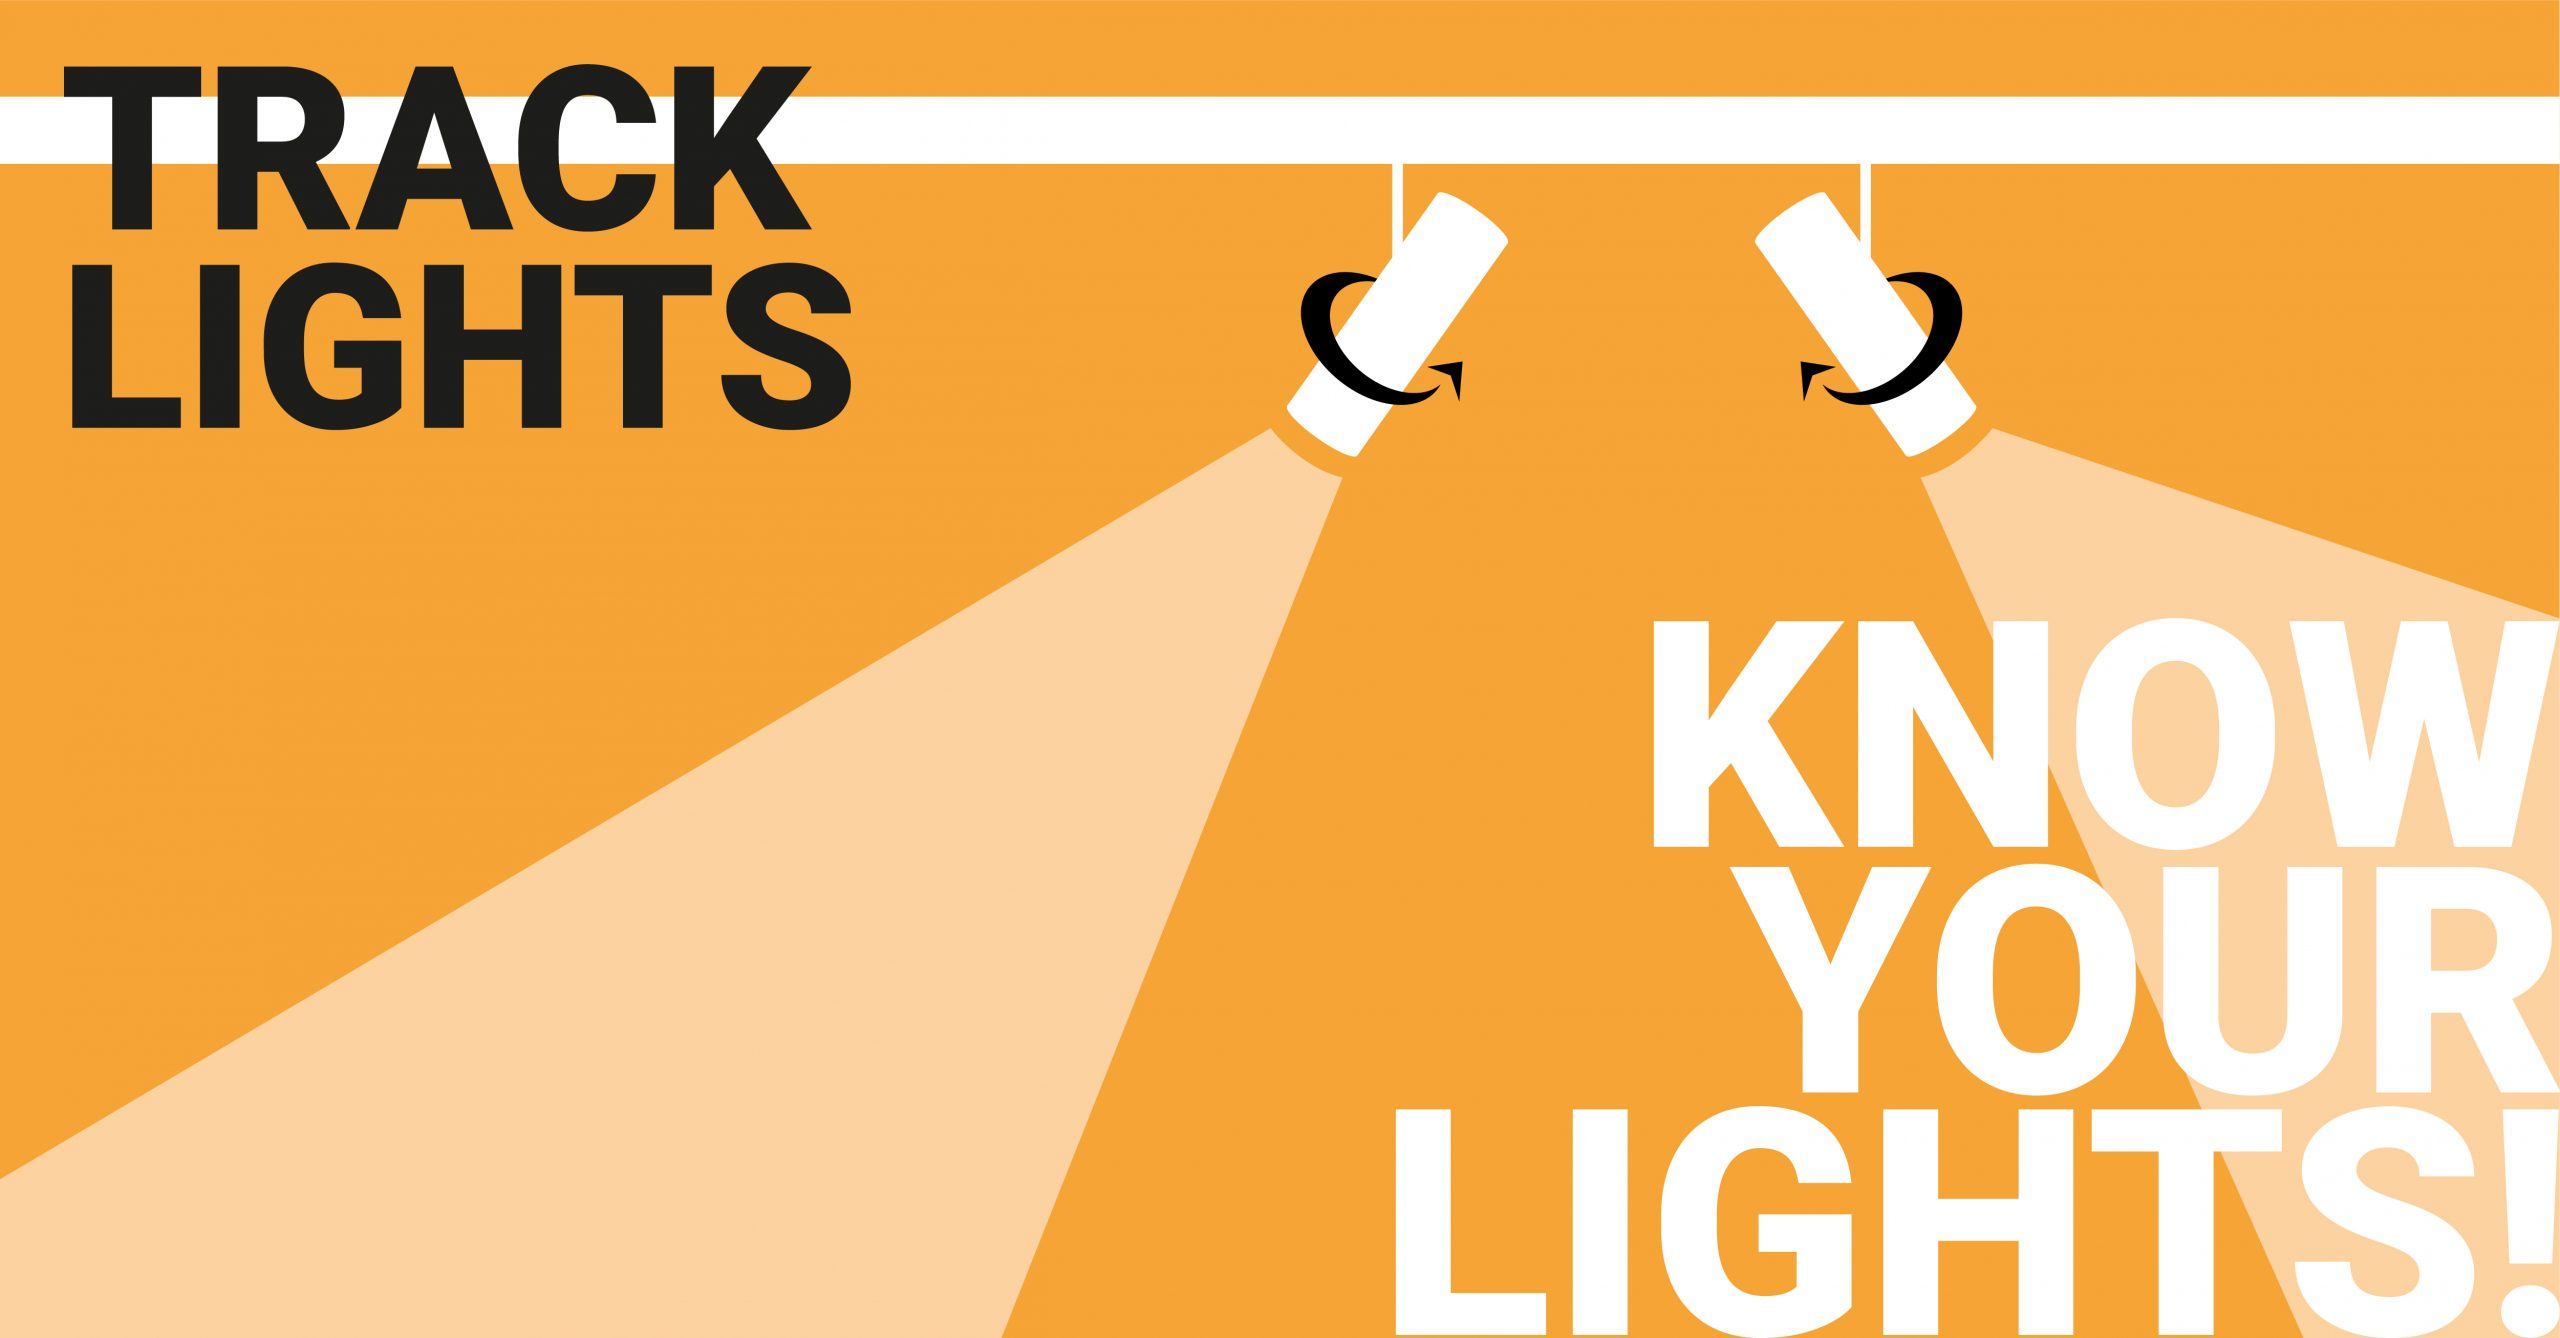 What are track lights